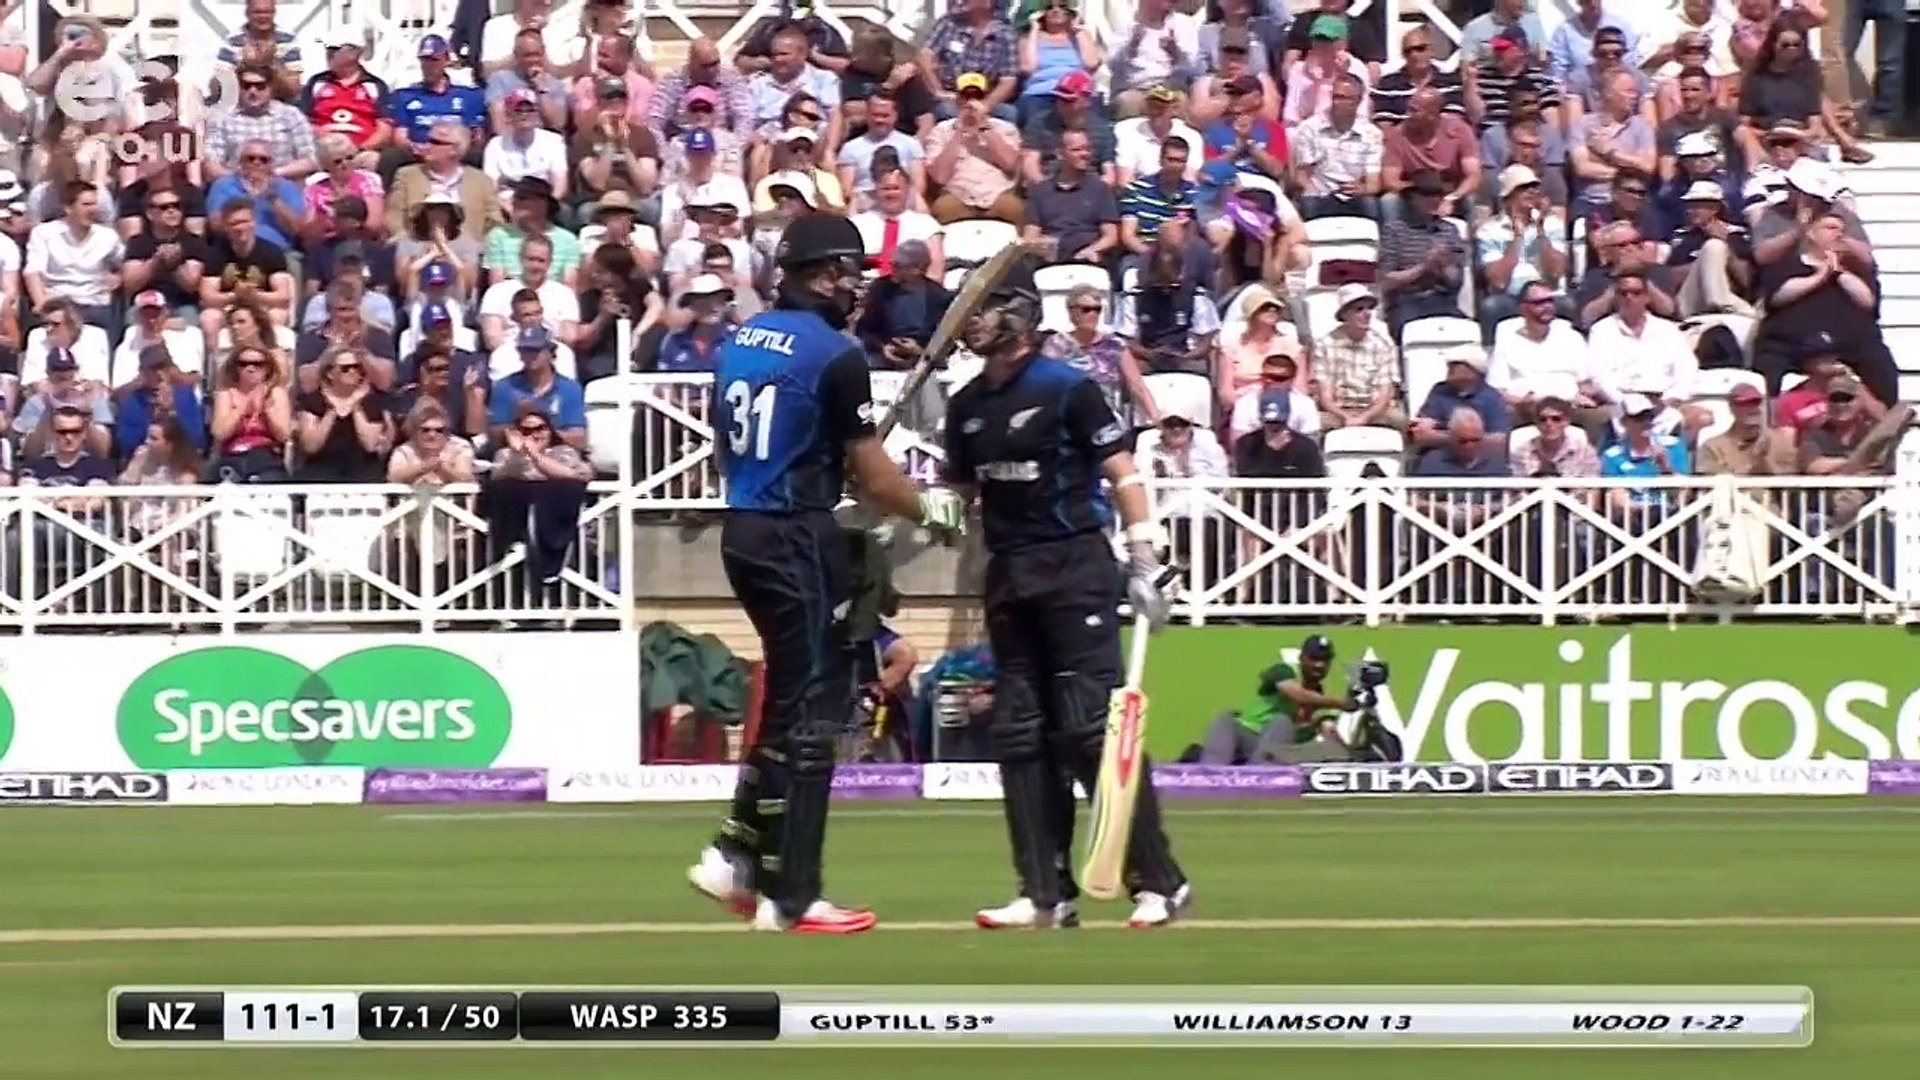 England's Highest Successful ODI Run Chase: England v New Zealand 4th ODI 2015 - Extended Highl